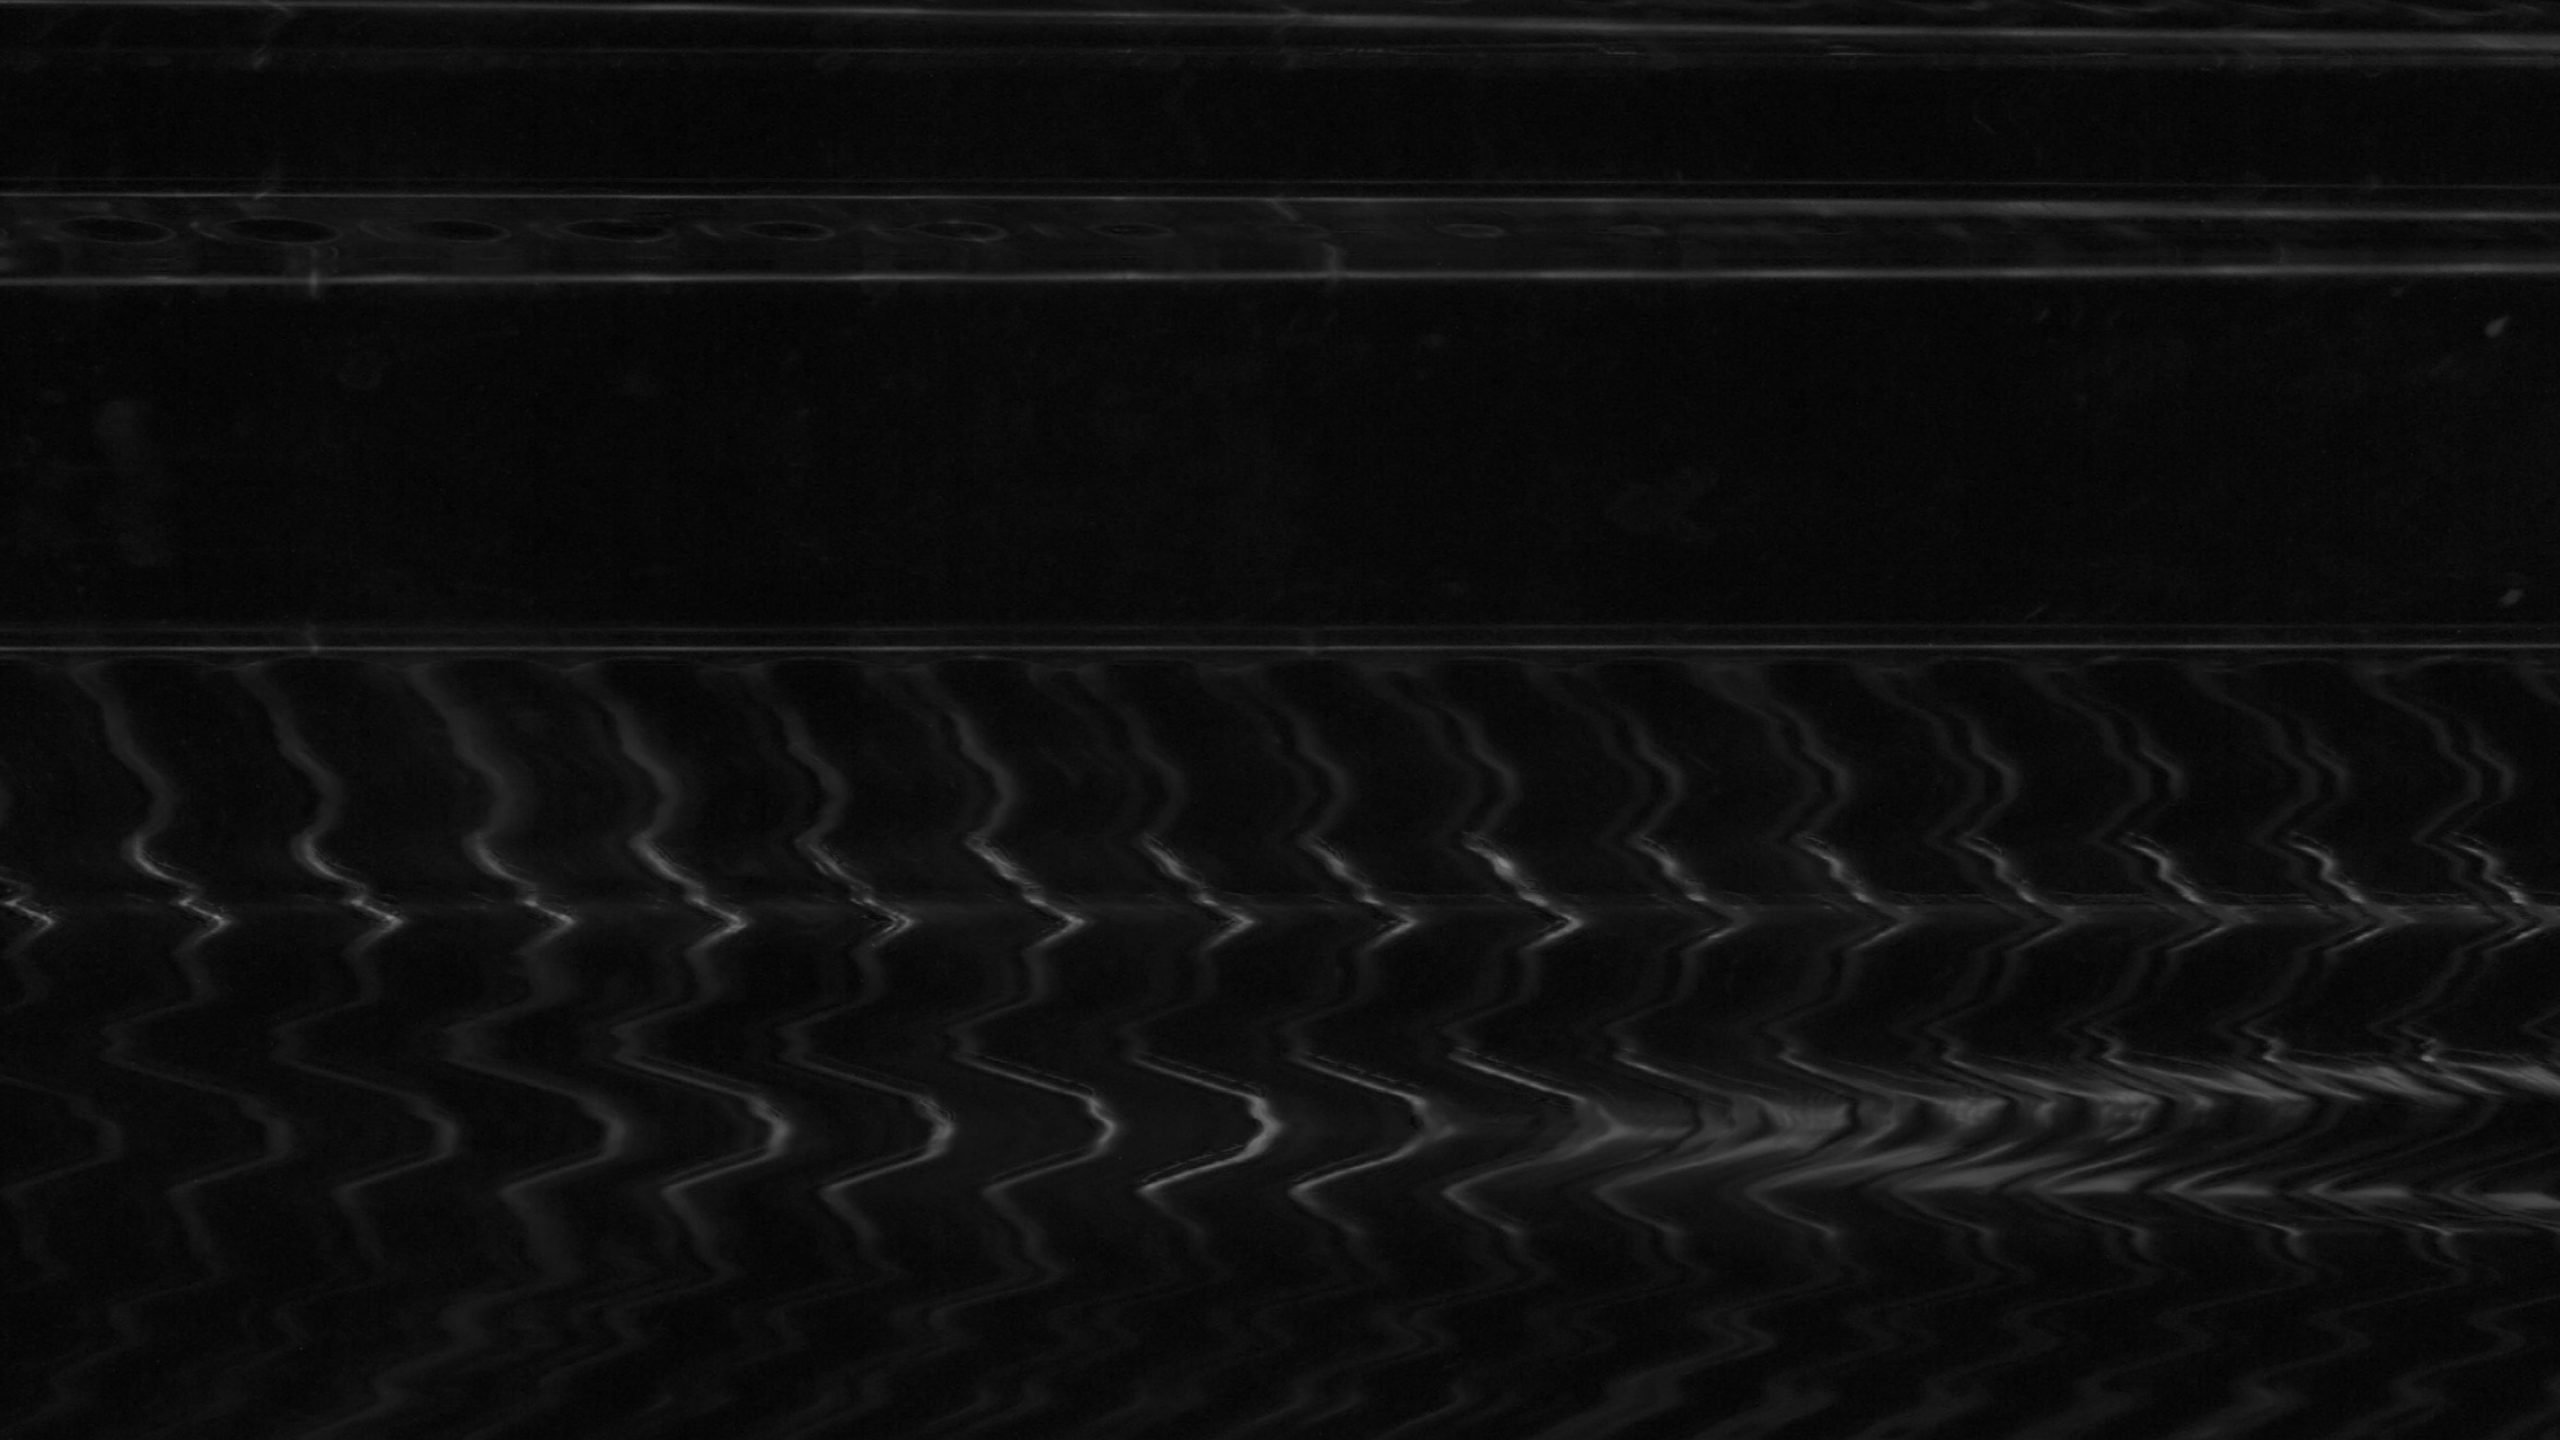 black-abstract-background